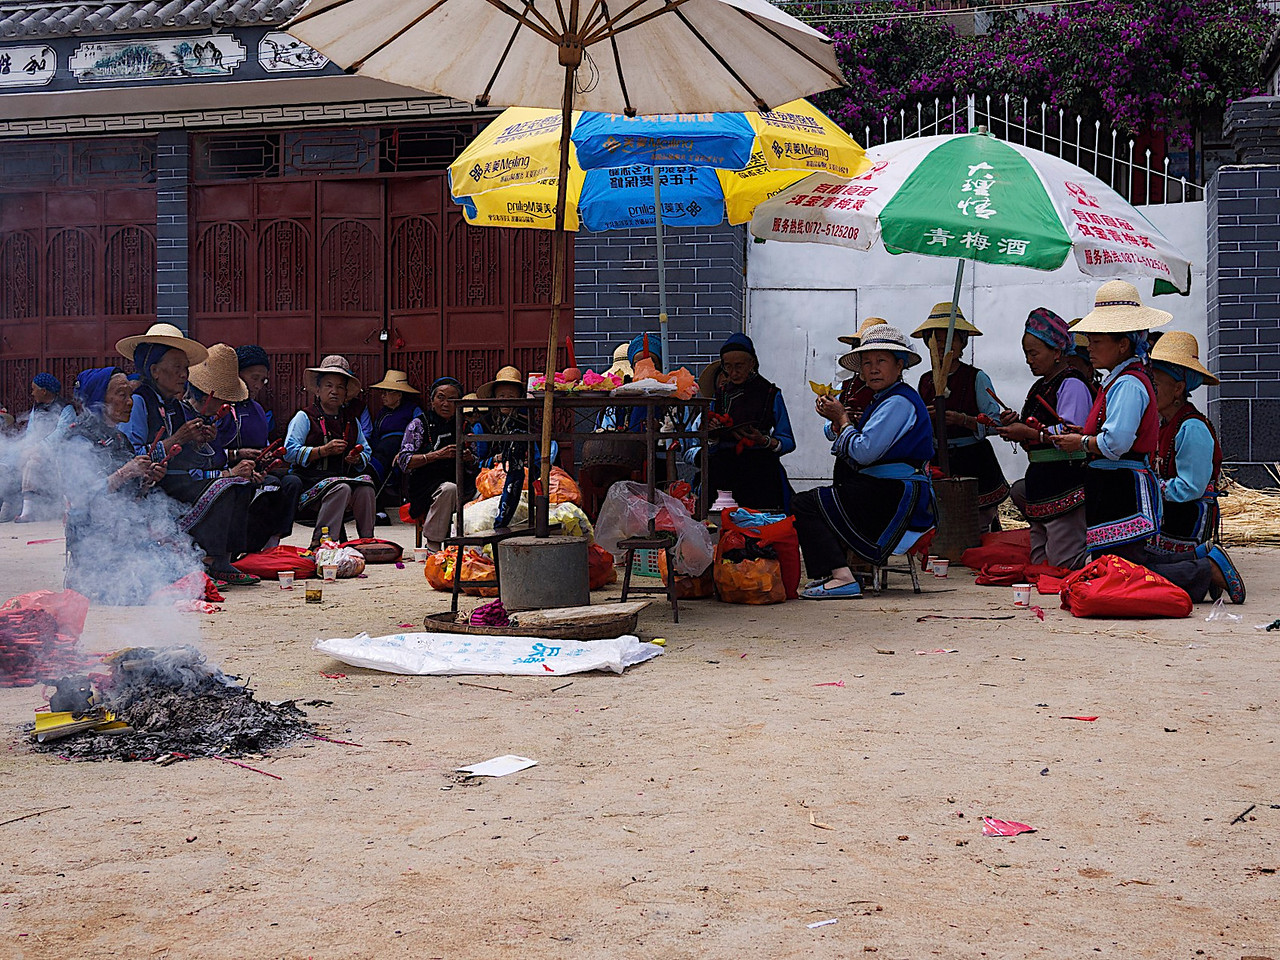 the bai women keep the tradition alive by singing all day in preparation for the evening's fire festivities